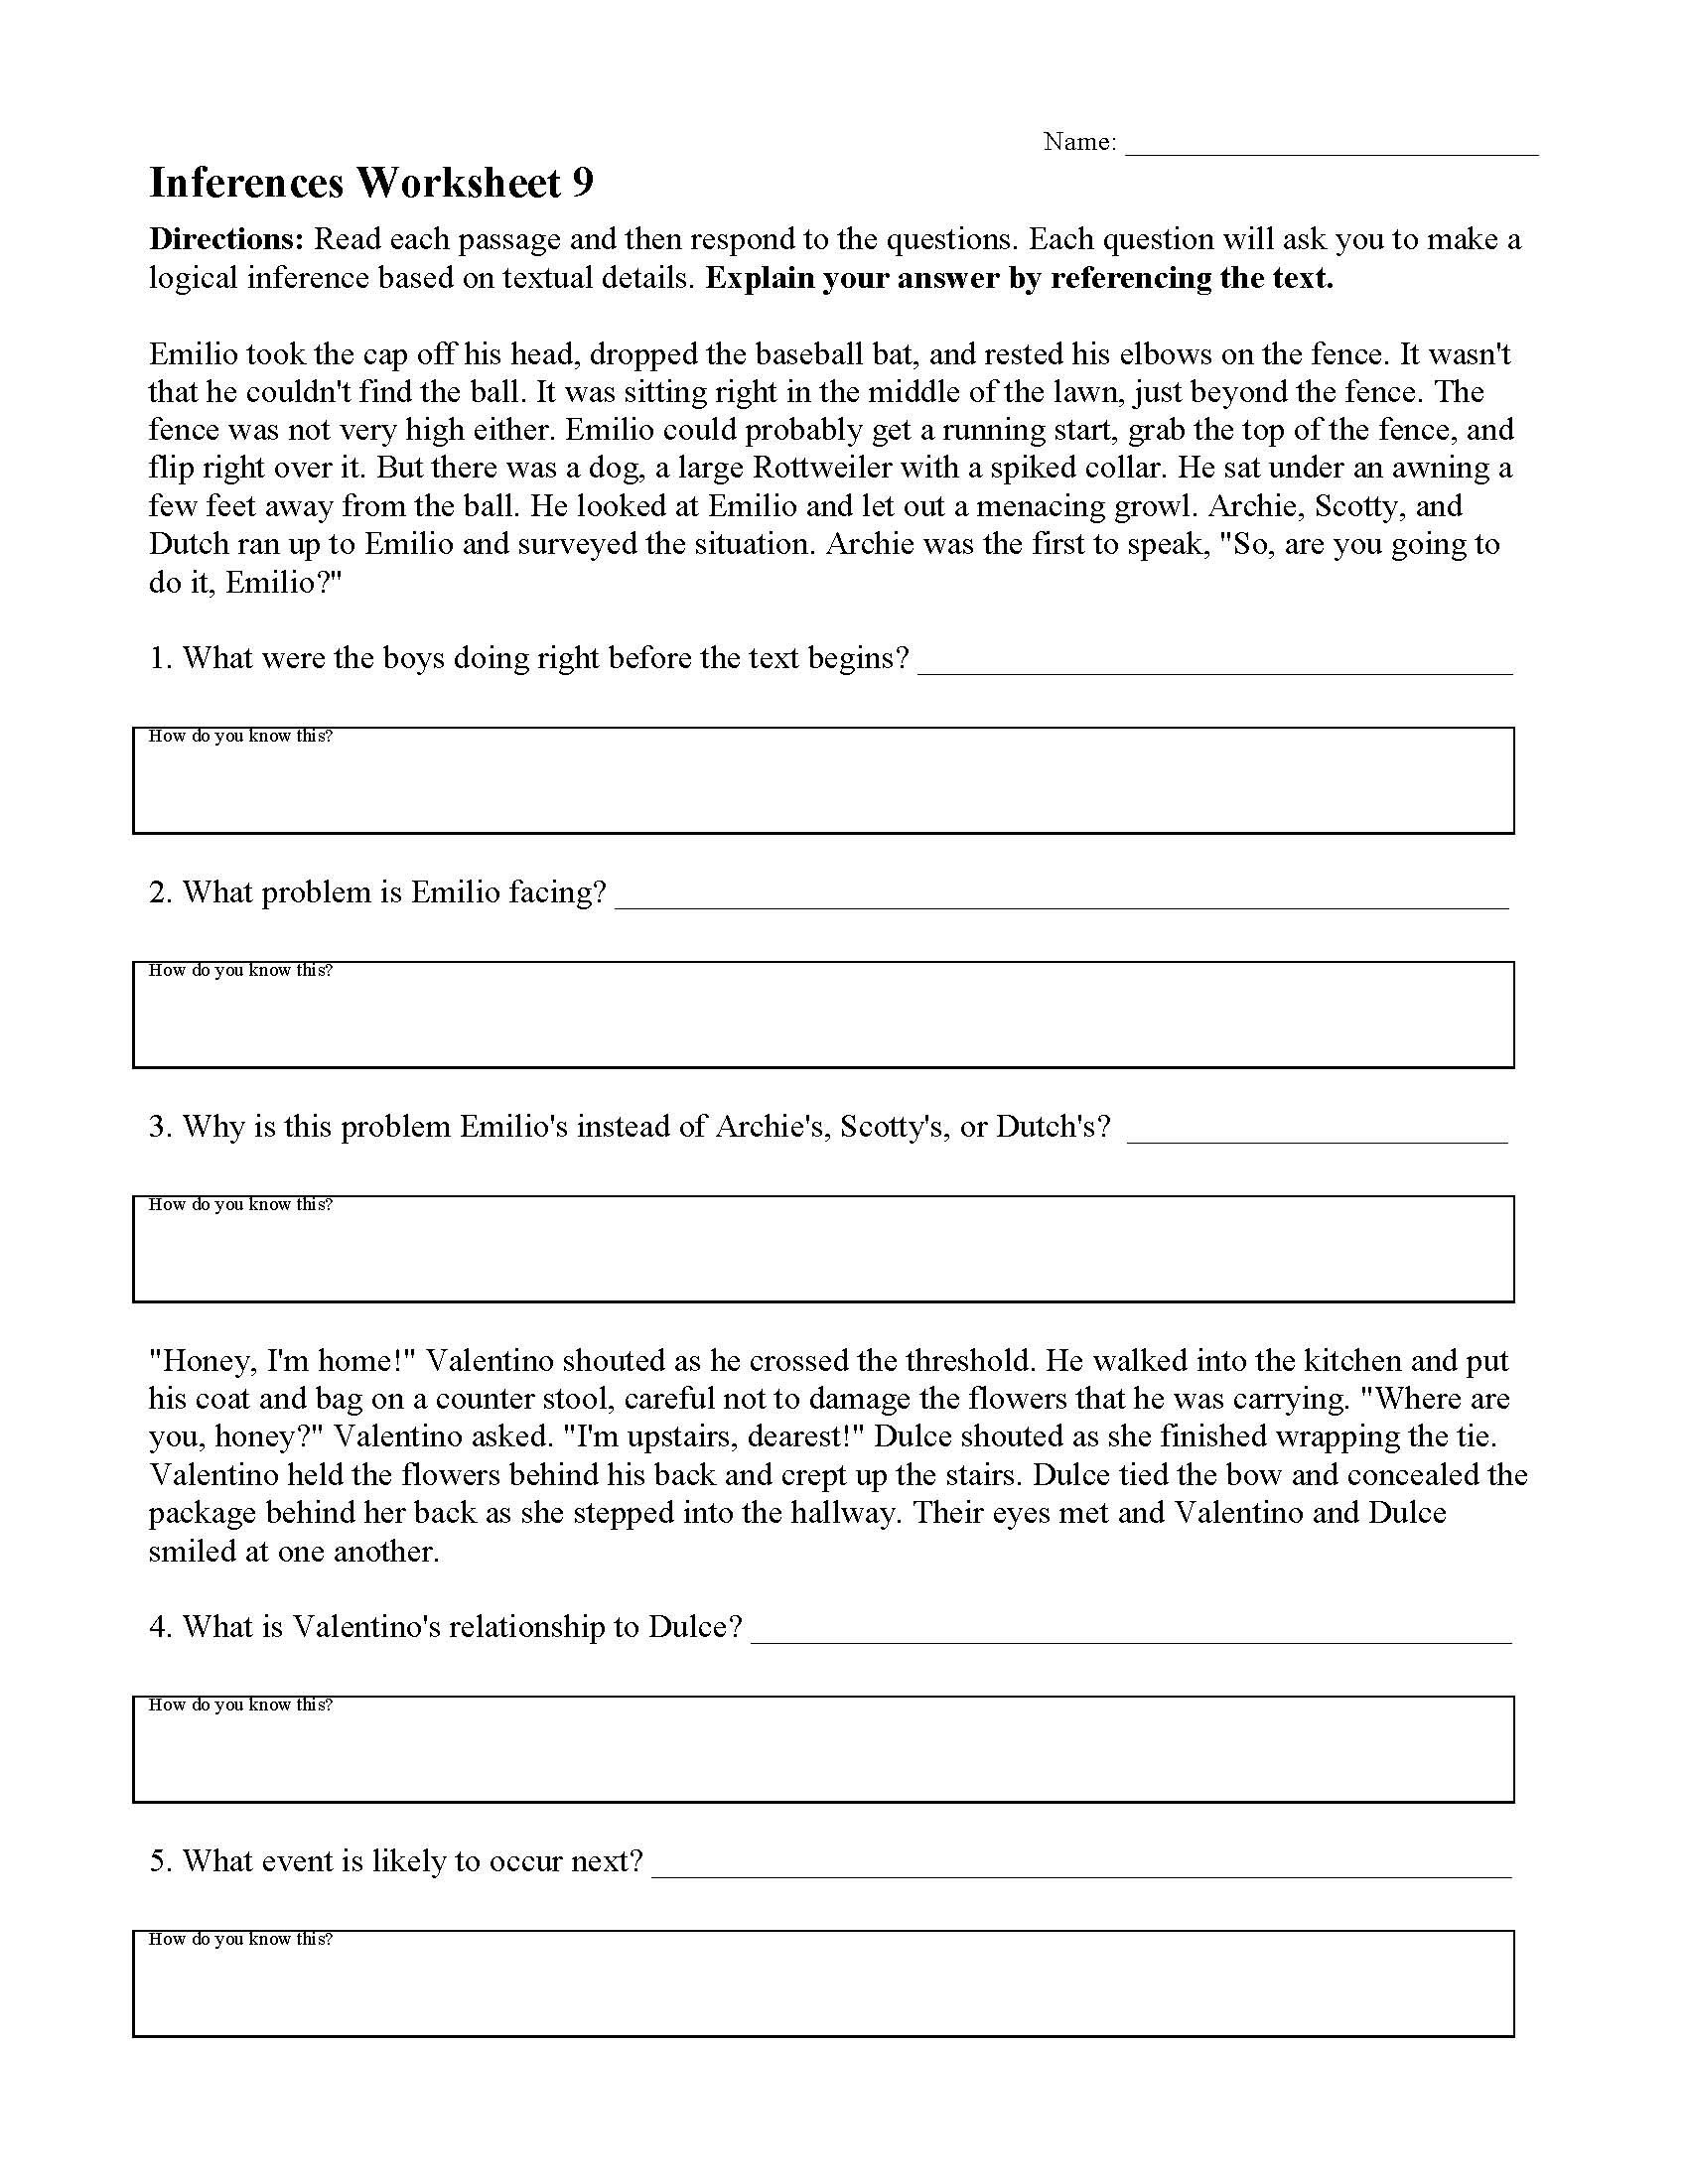 Making Predictions Worksheets 3rd Grade Inferences Worksheets